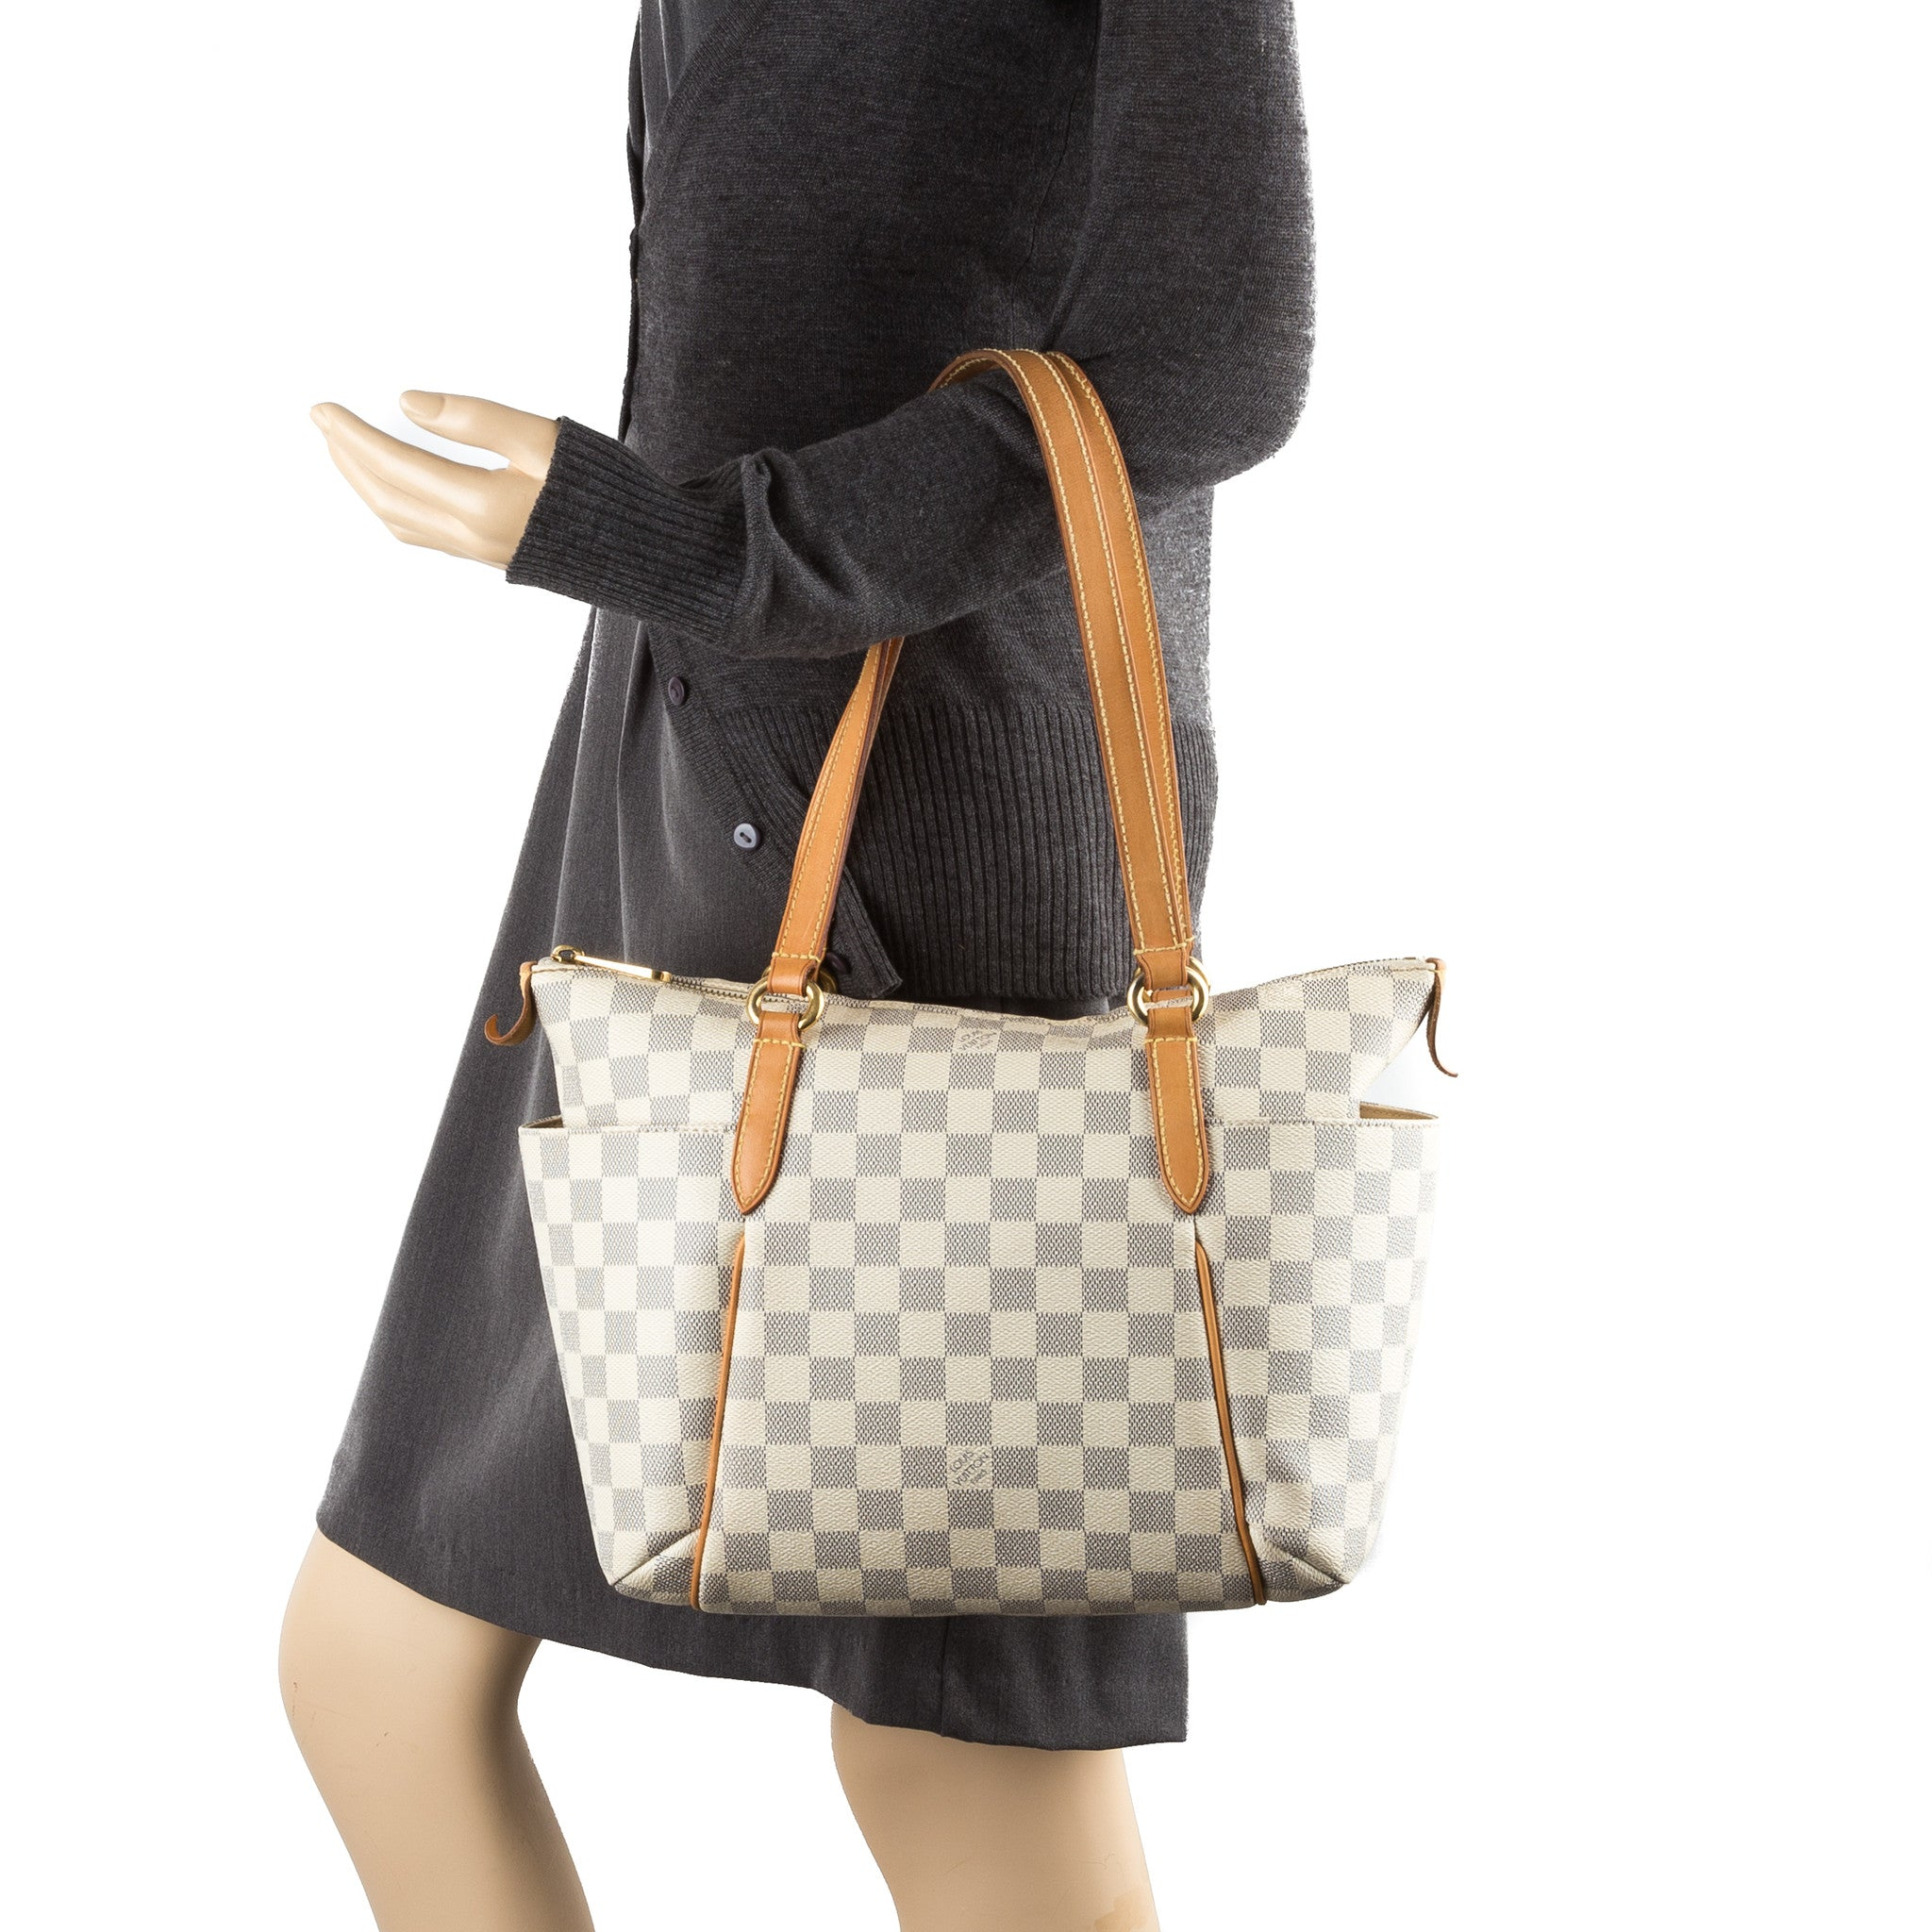 c4c94b8f05aa Louis Vuitton Damier Azur Totally PM Bag (Pre Owned) - 2340006